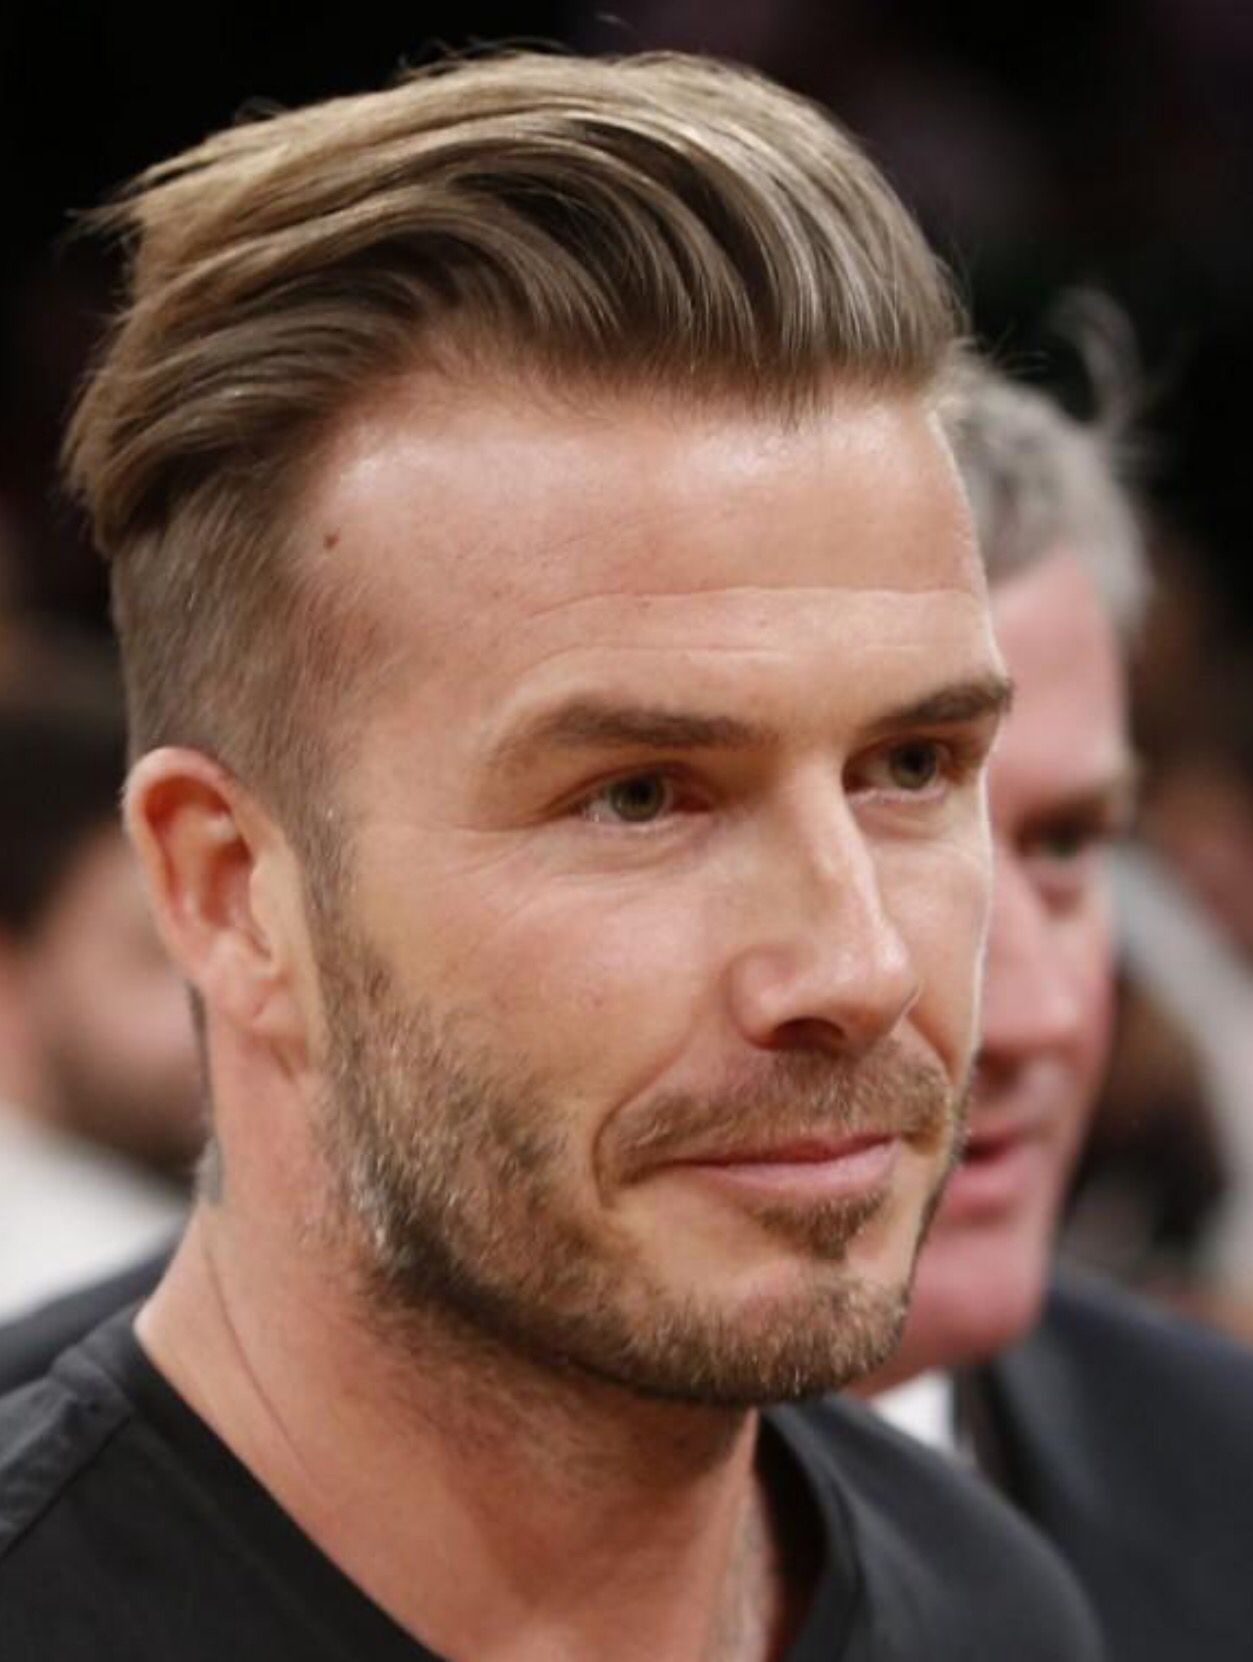 undercut comb over | eye candy in 2019 | beckham haircut